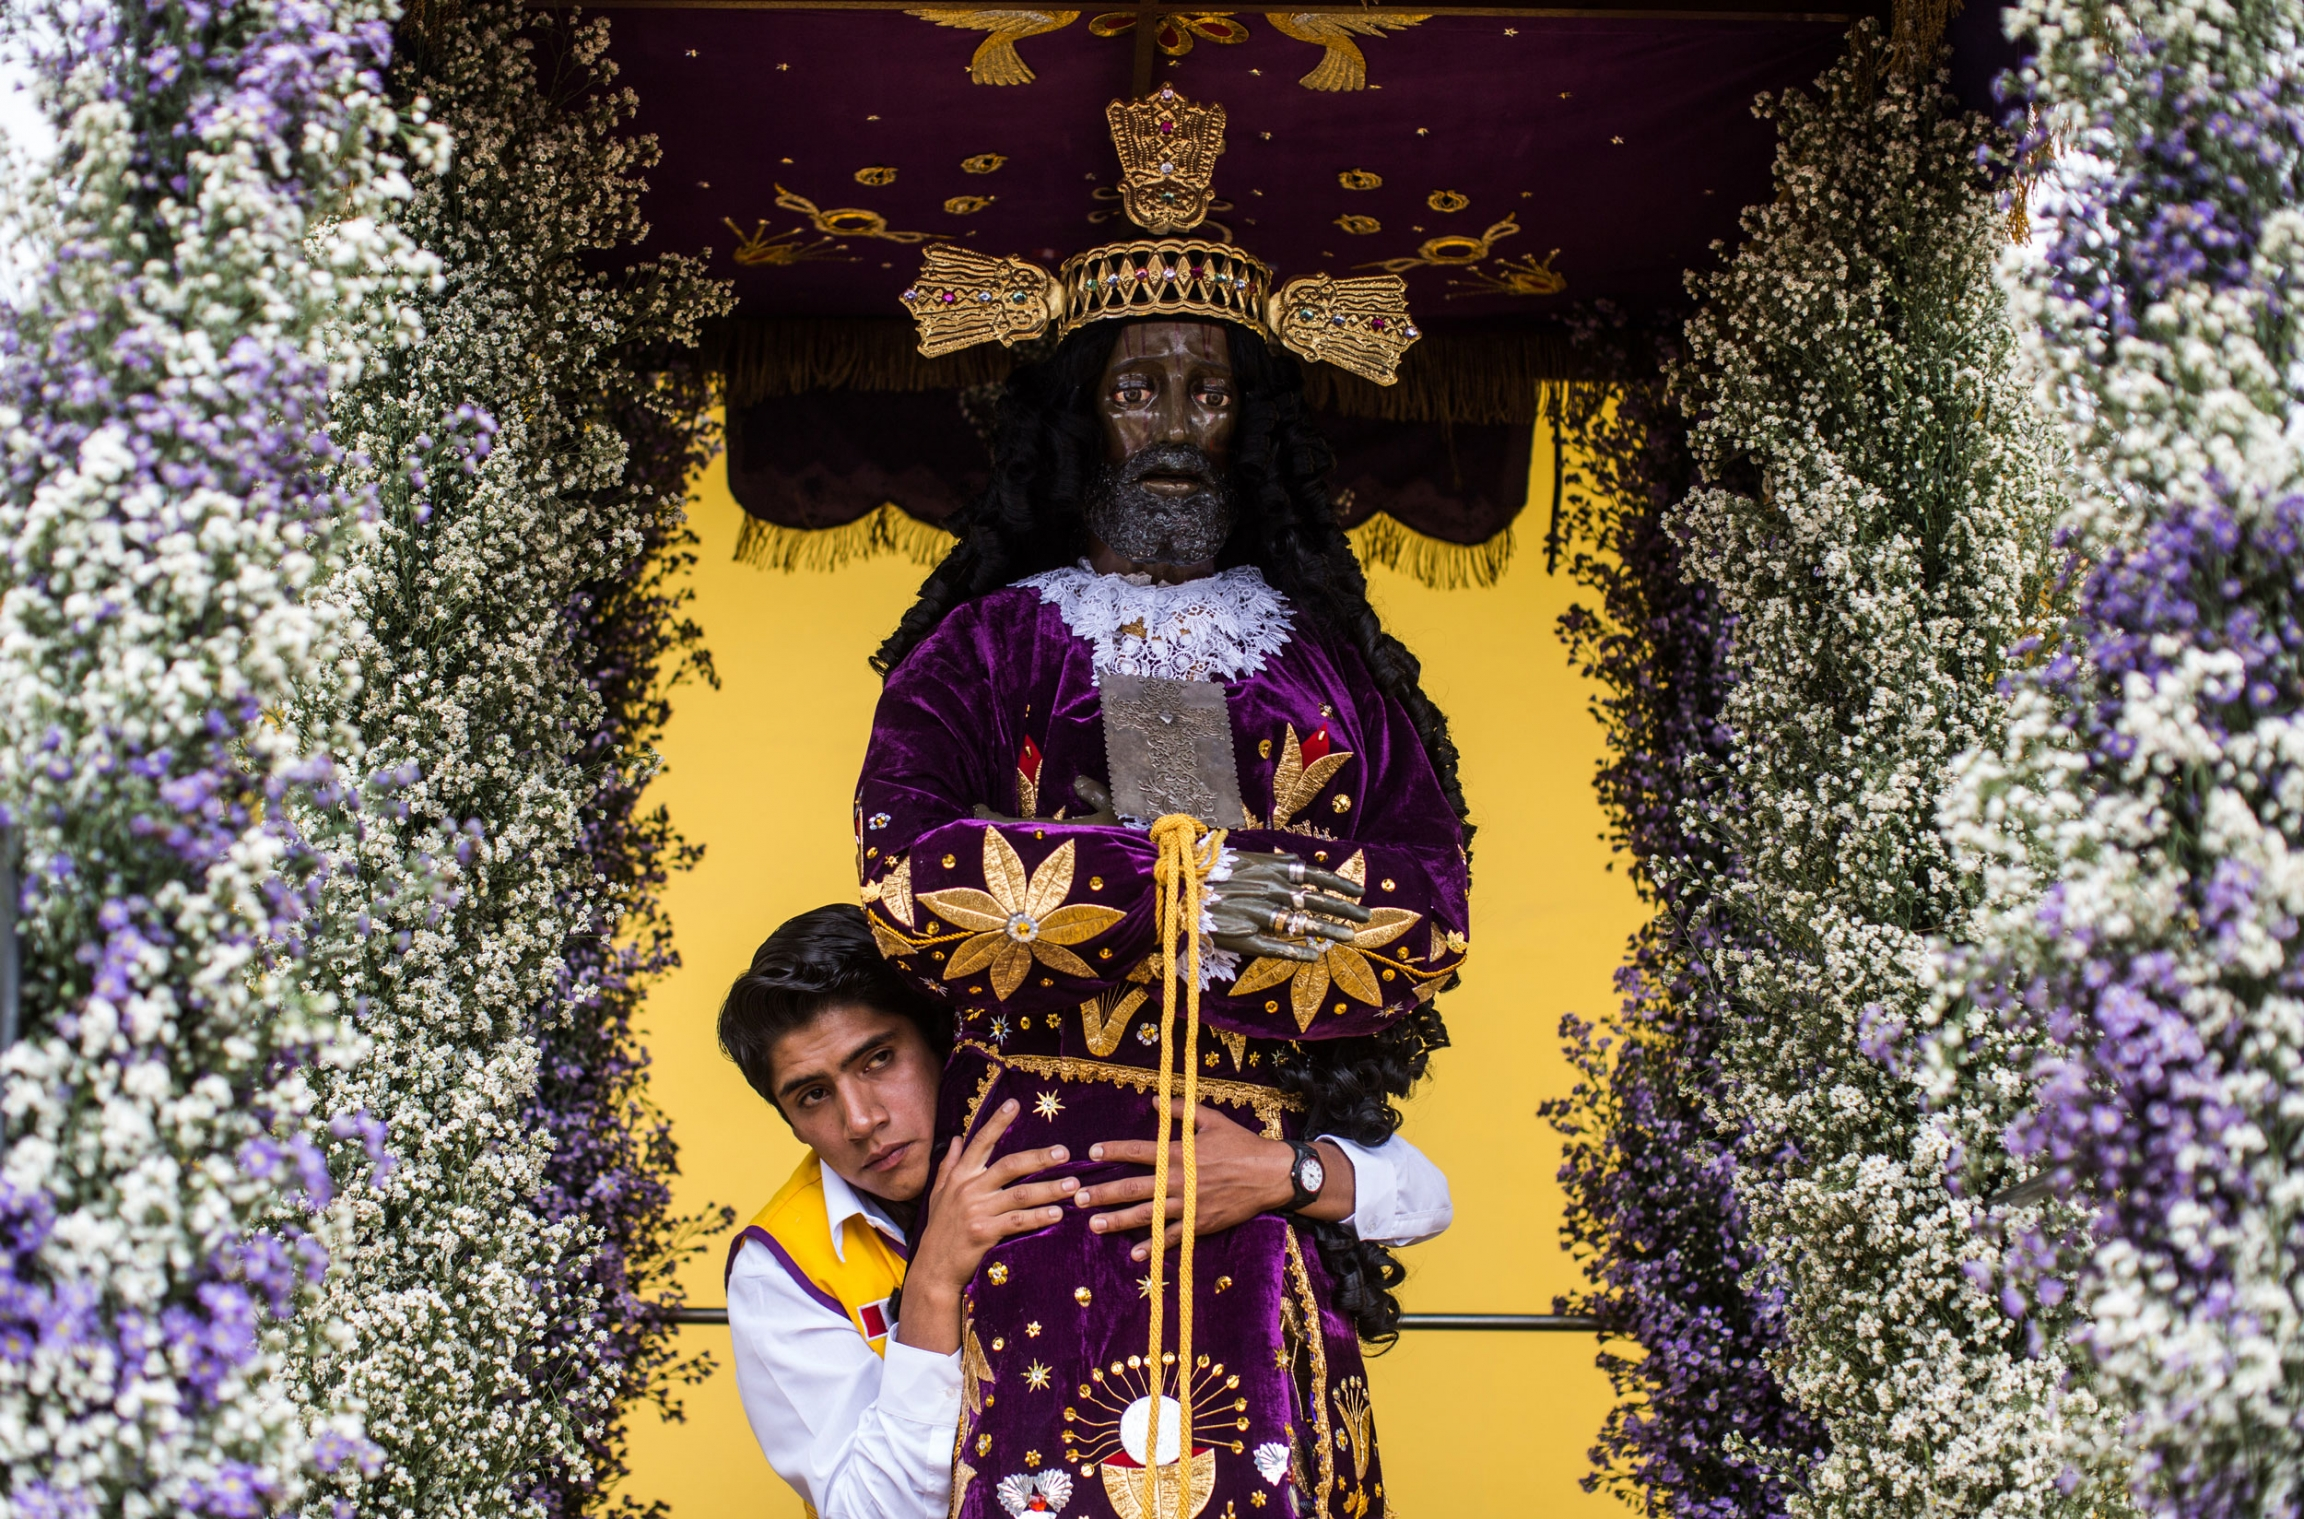 A young man is shown standing behind a carved statue of the Captive which is adorned with a decorative religious robe.